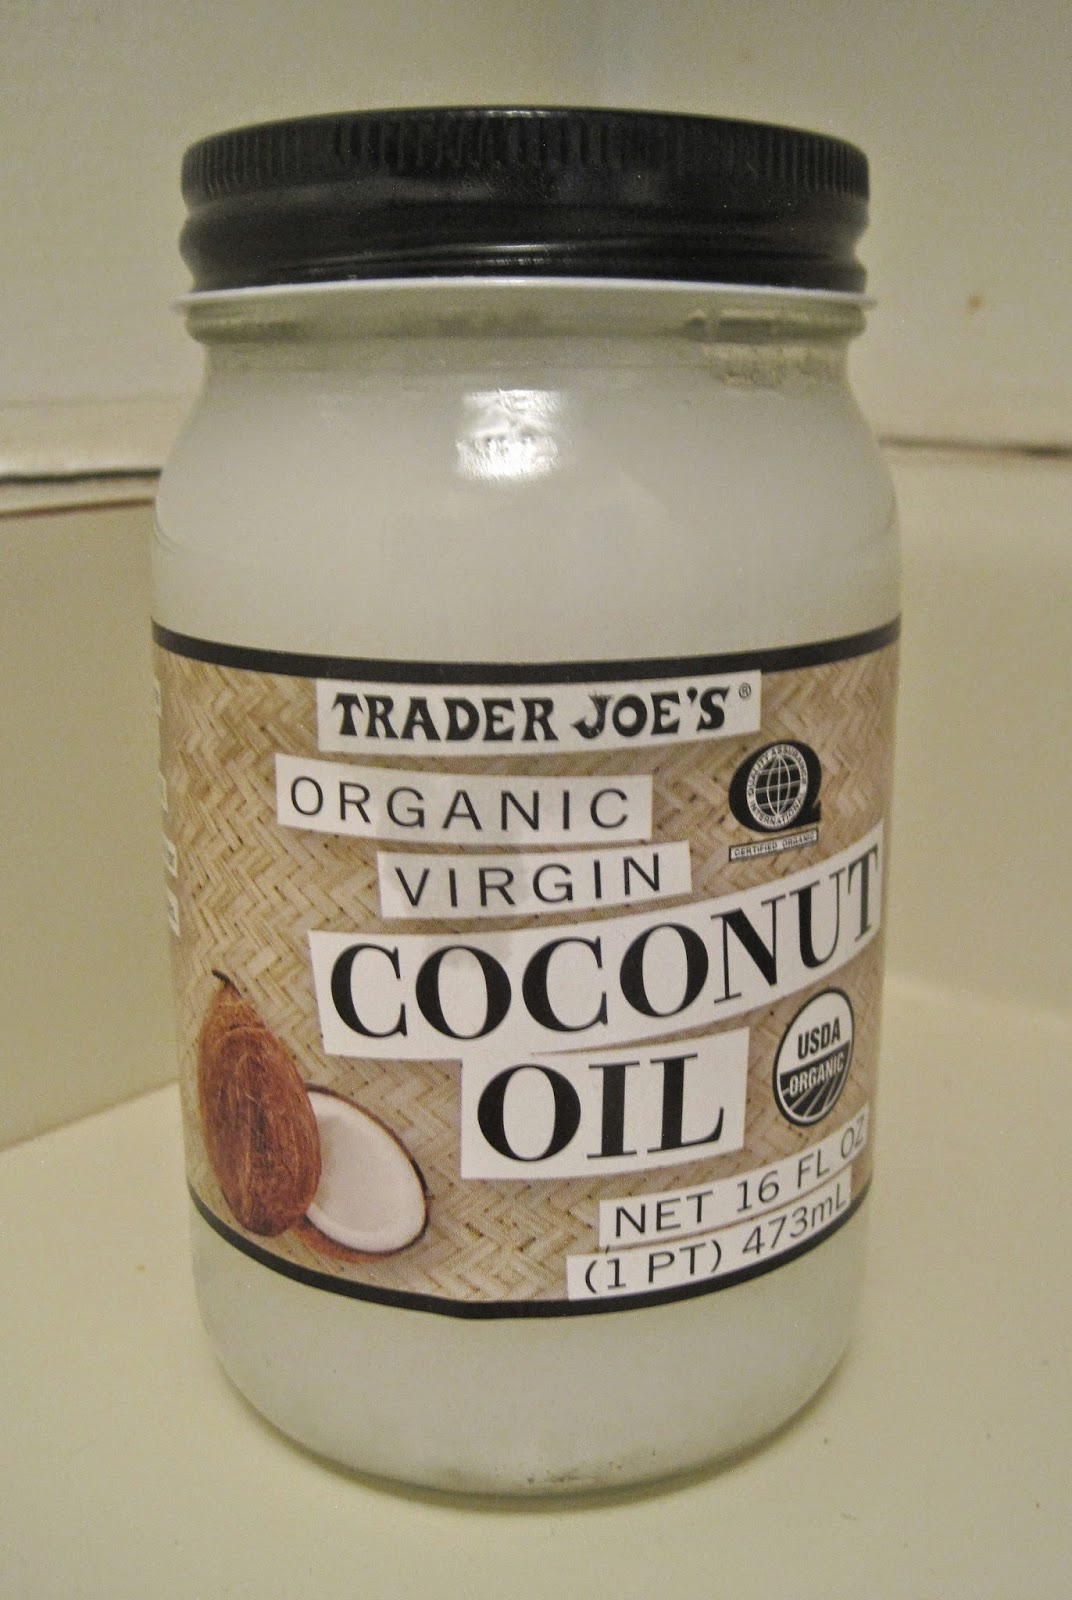 Trader Joe's Coconut Oil Vegan Organic - Veega Blog